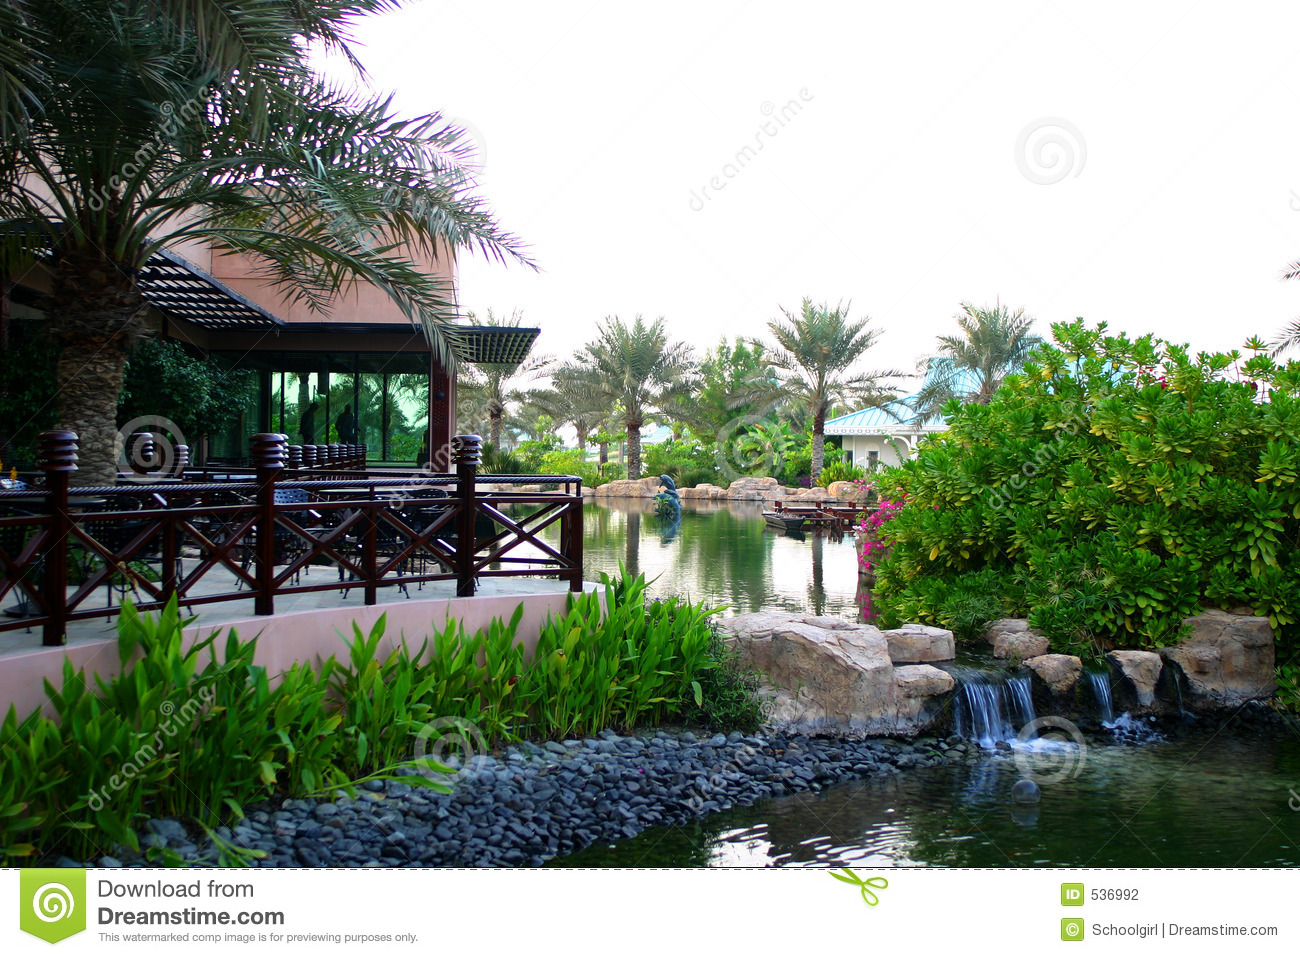 Restaurant with terrace and pond stock photography image for Restaurant with terrace